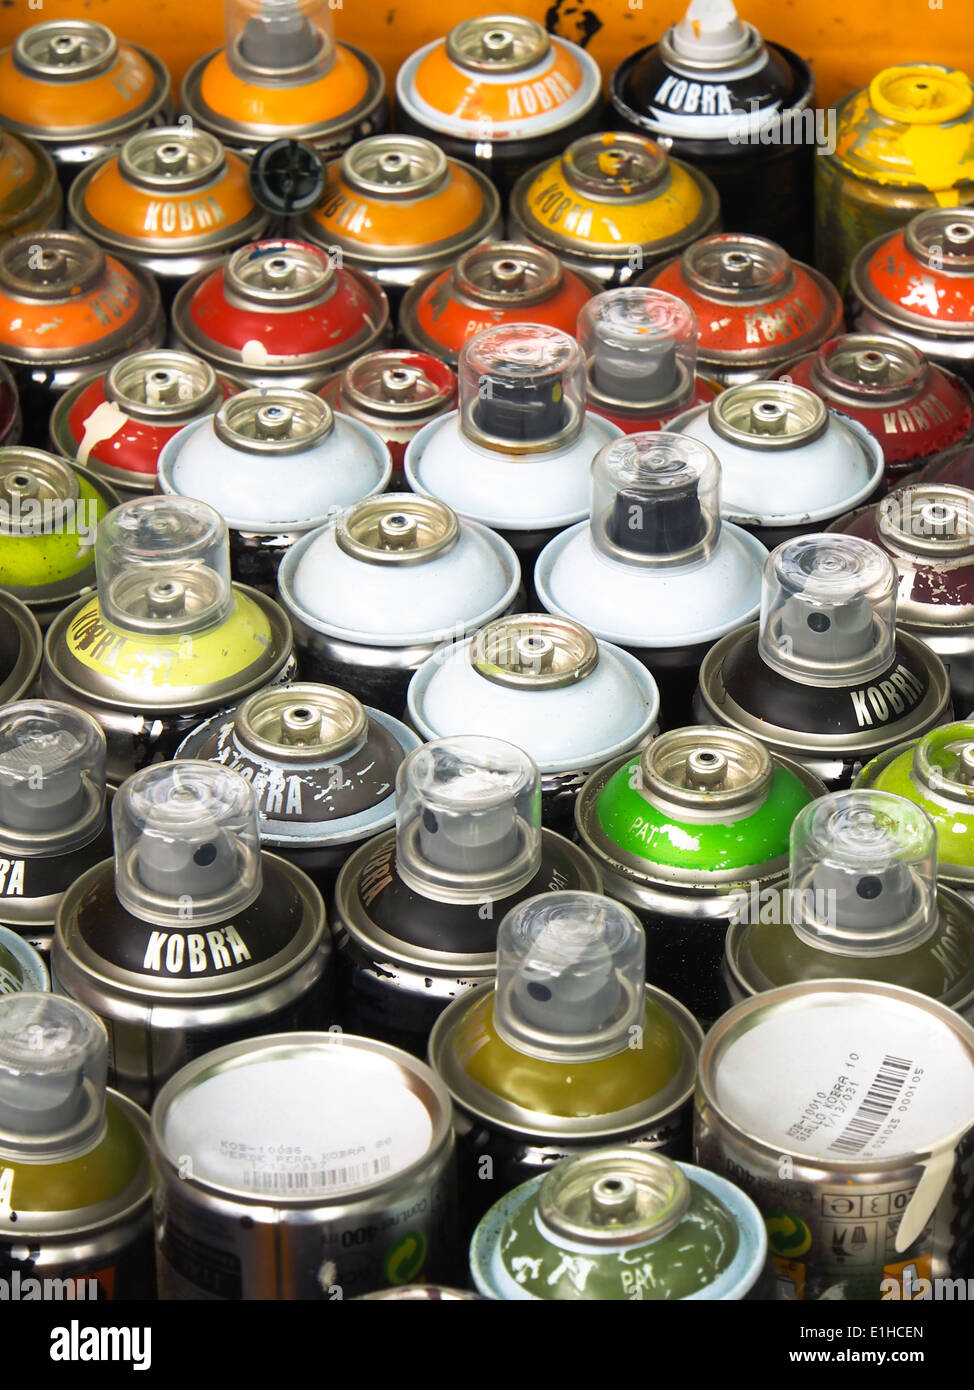 spray paint cans ready to be used by a graffiti artist Stock Photo